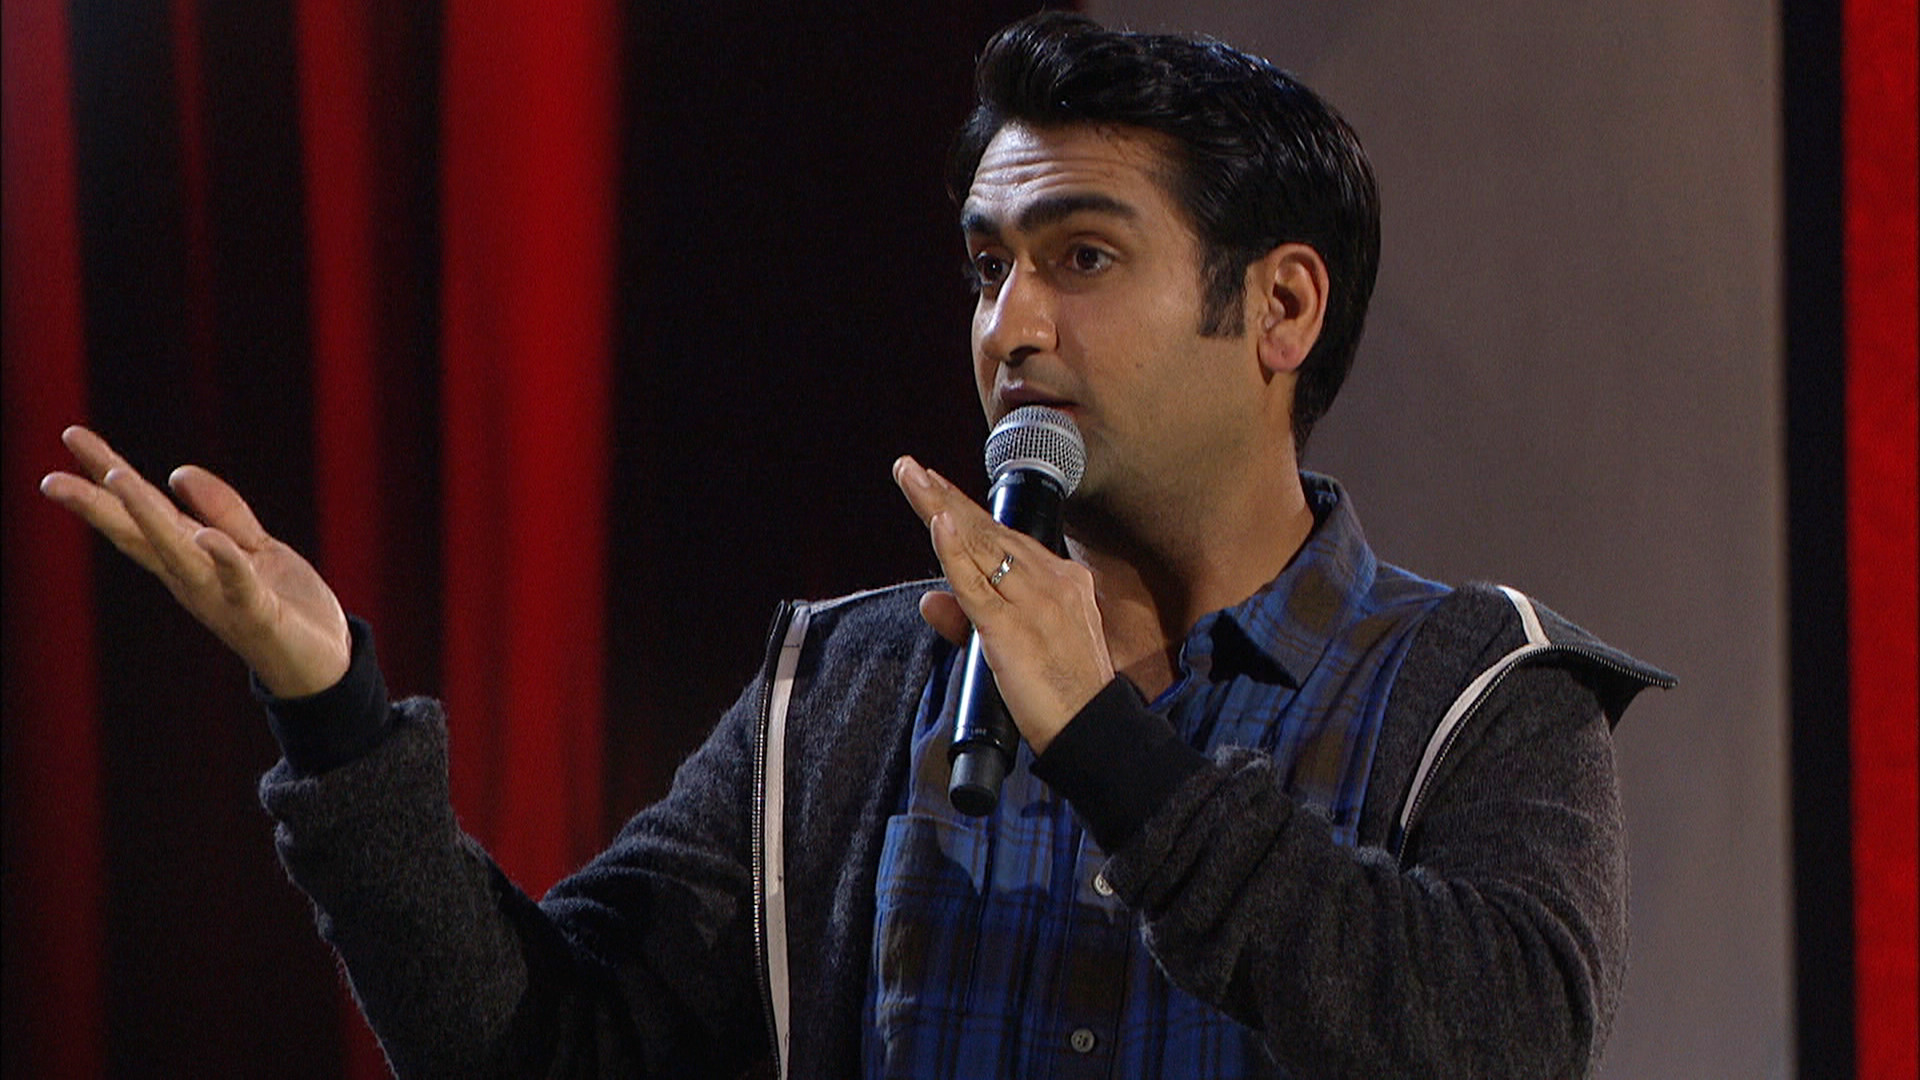 Uncensored - Kumail Nanjiani - House of Betas Pt. 1